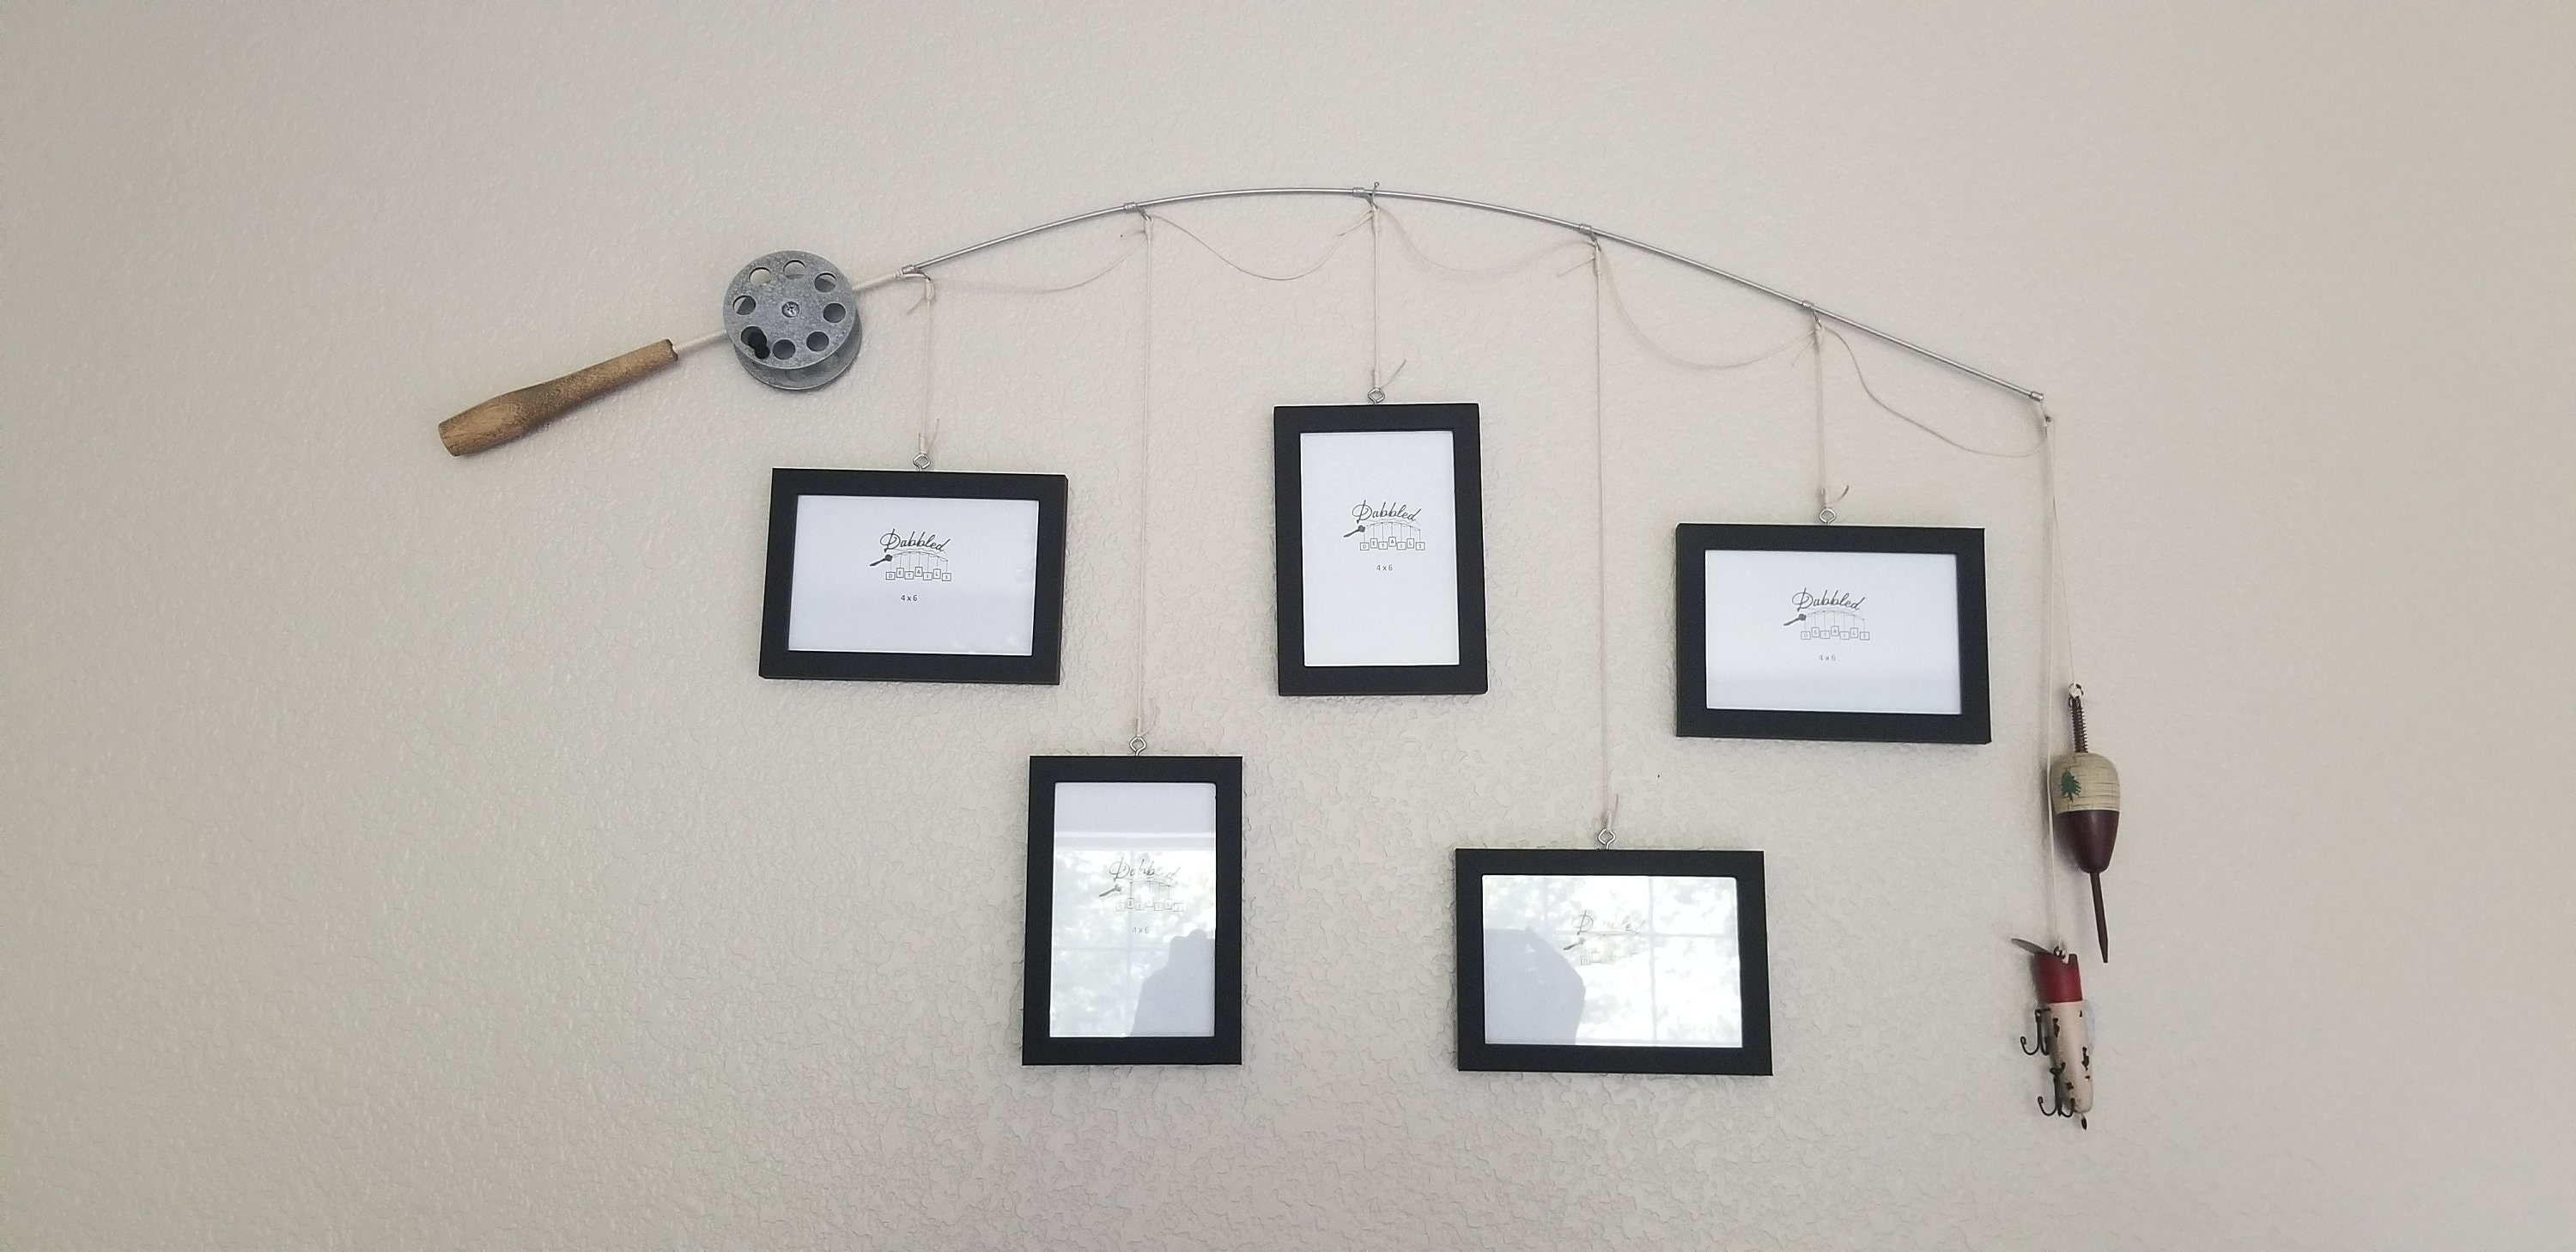 Fishing Pole Picture Frame - Brown or Silver Pole - 5 - 4 in x 6 in ...